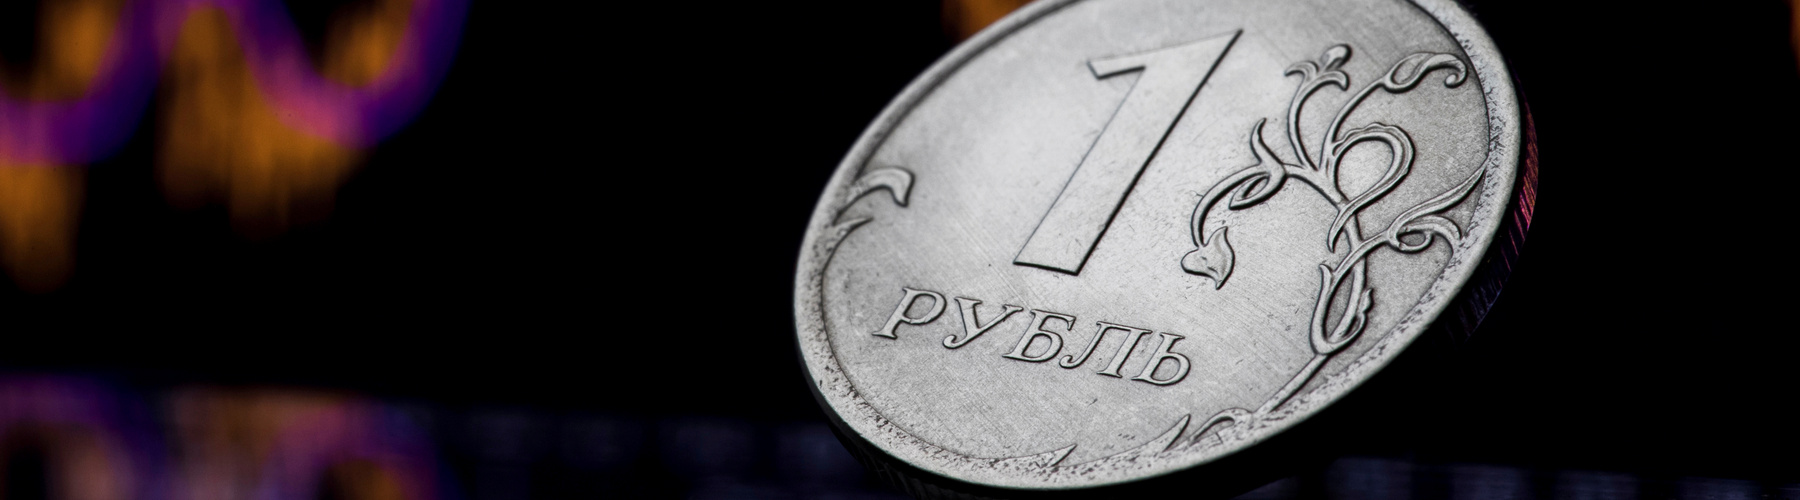 Russia's austerity politics point to a rocky year ahead